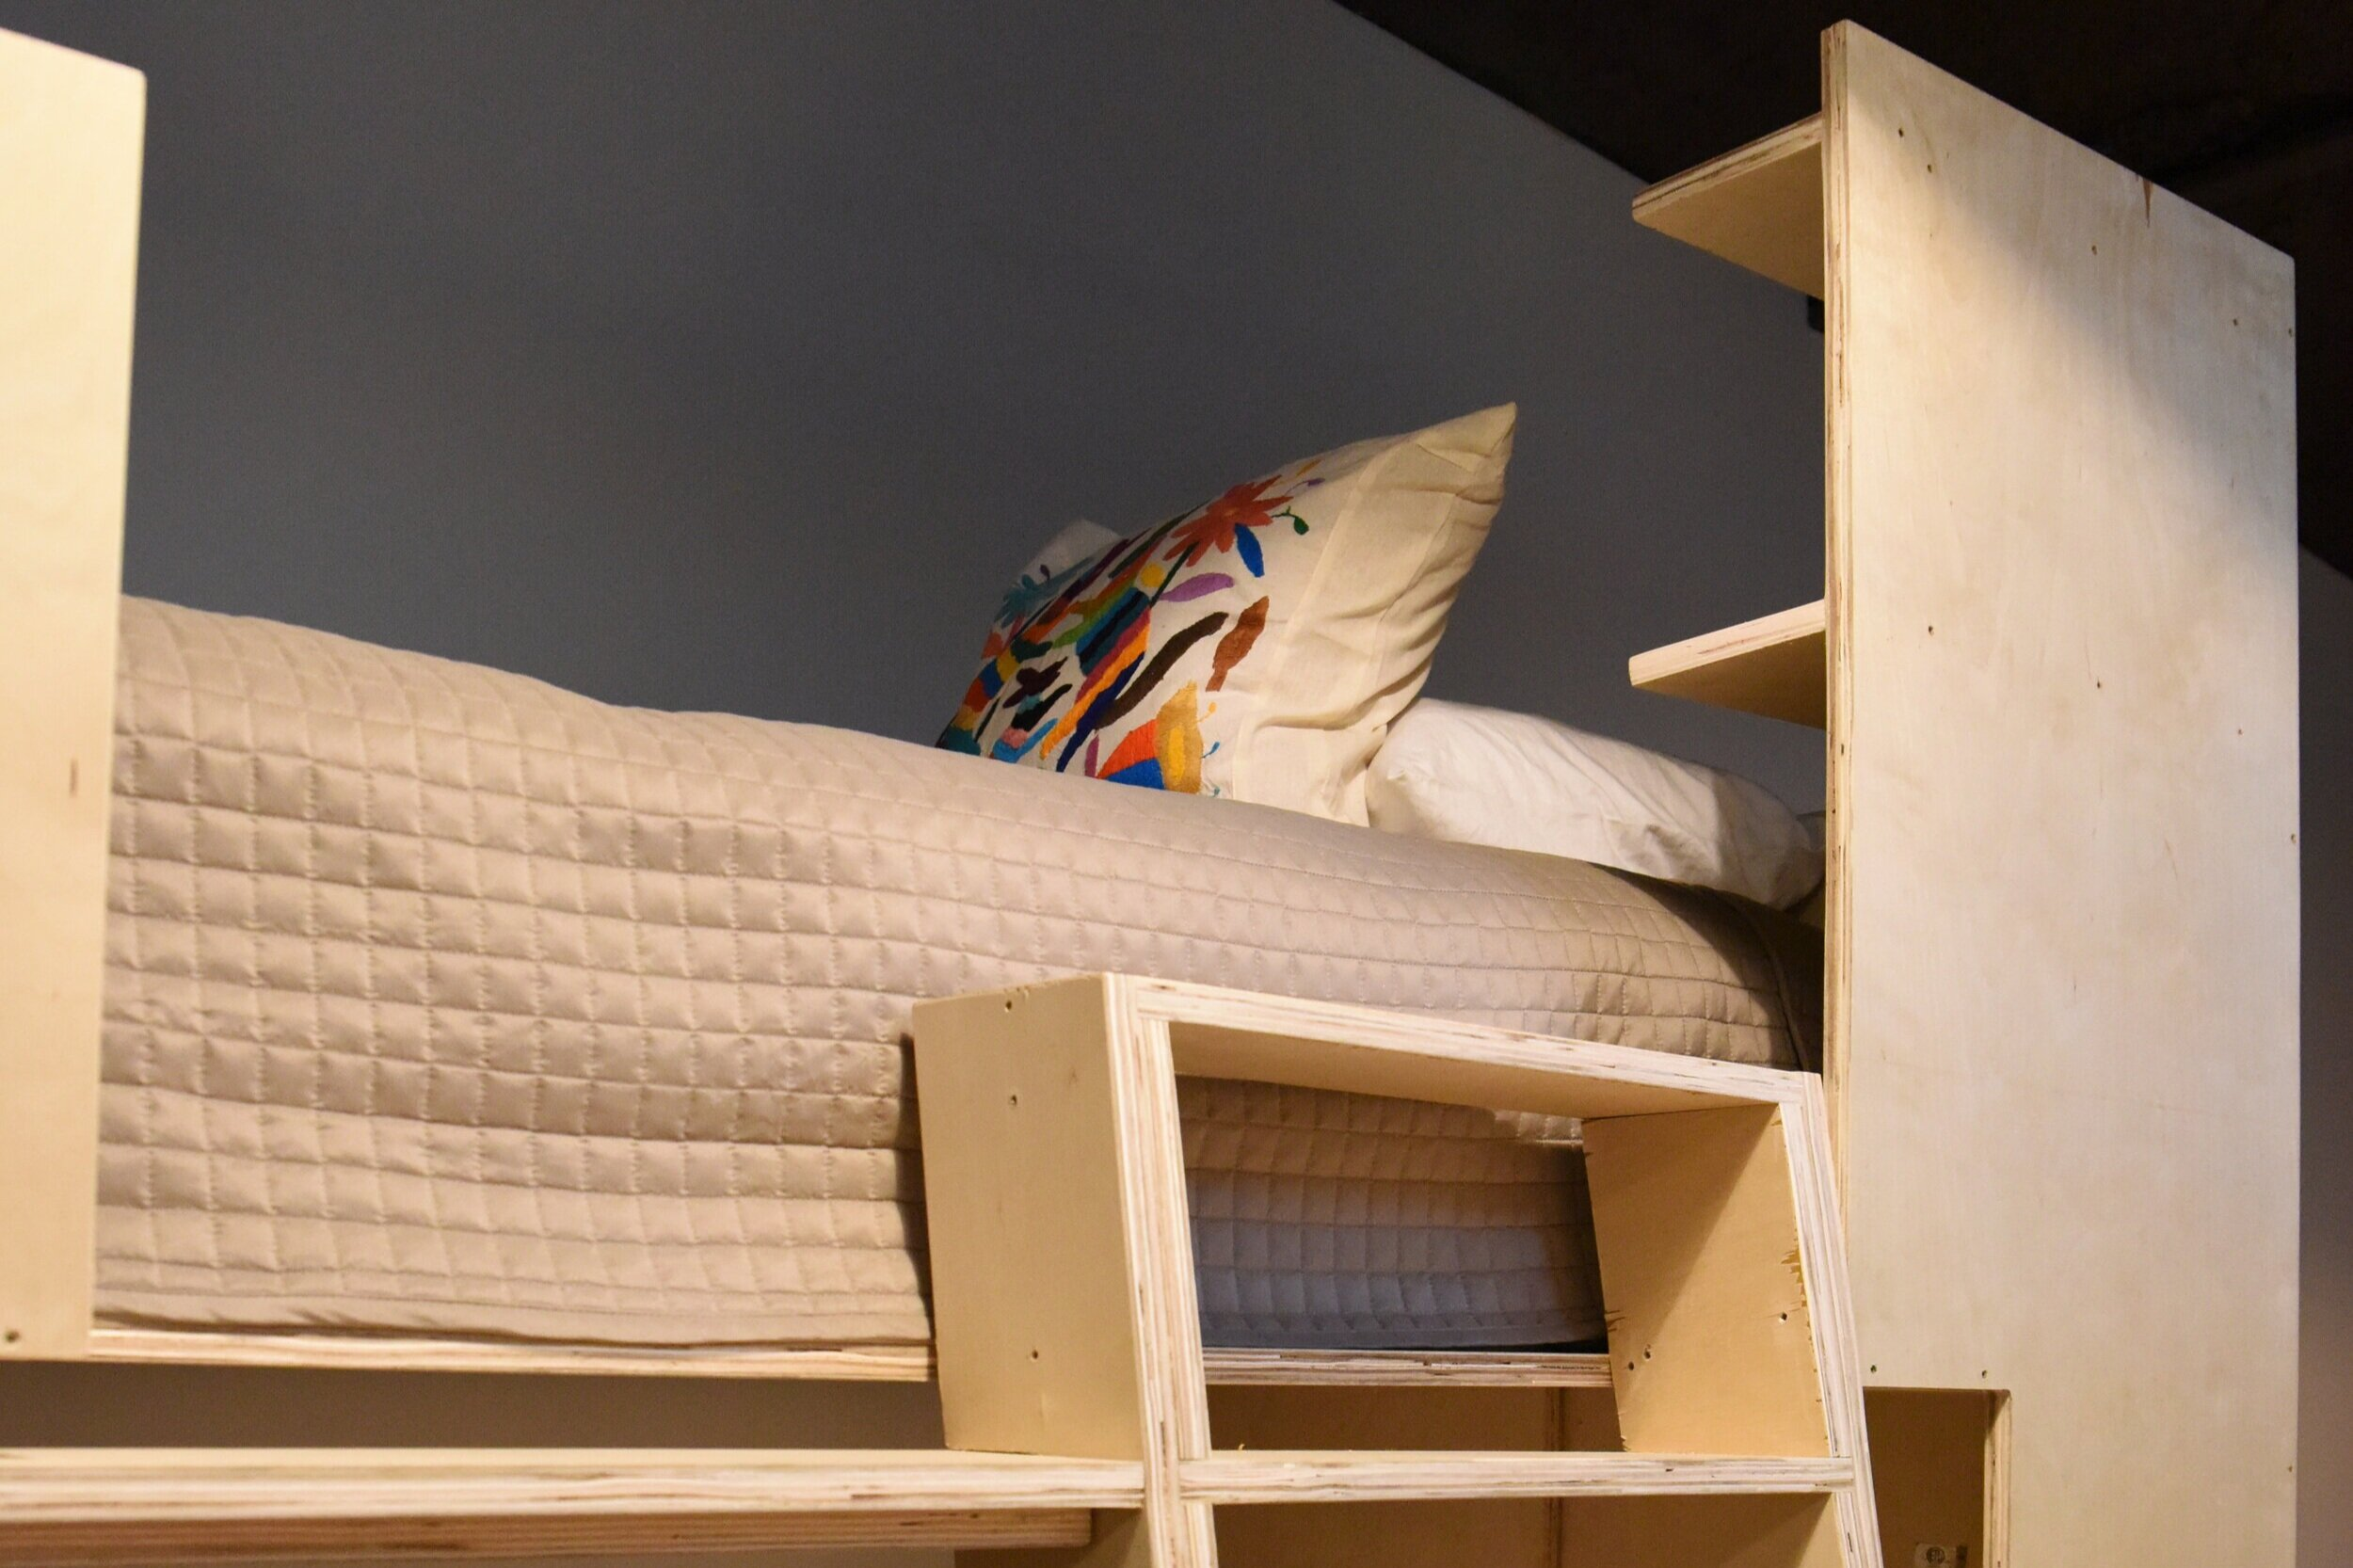 The Bodega House Ranchito Bunk Bed Room has four bunk beds and is a fun escape for all ages.